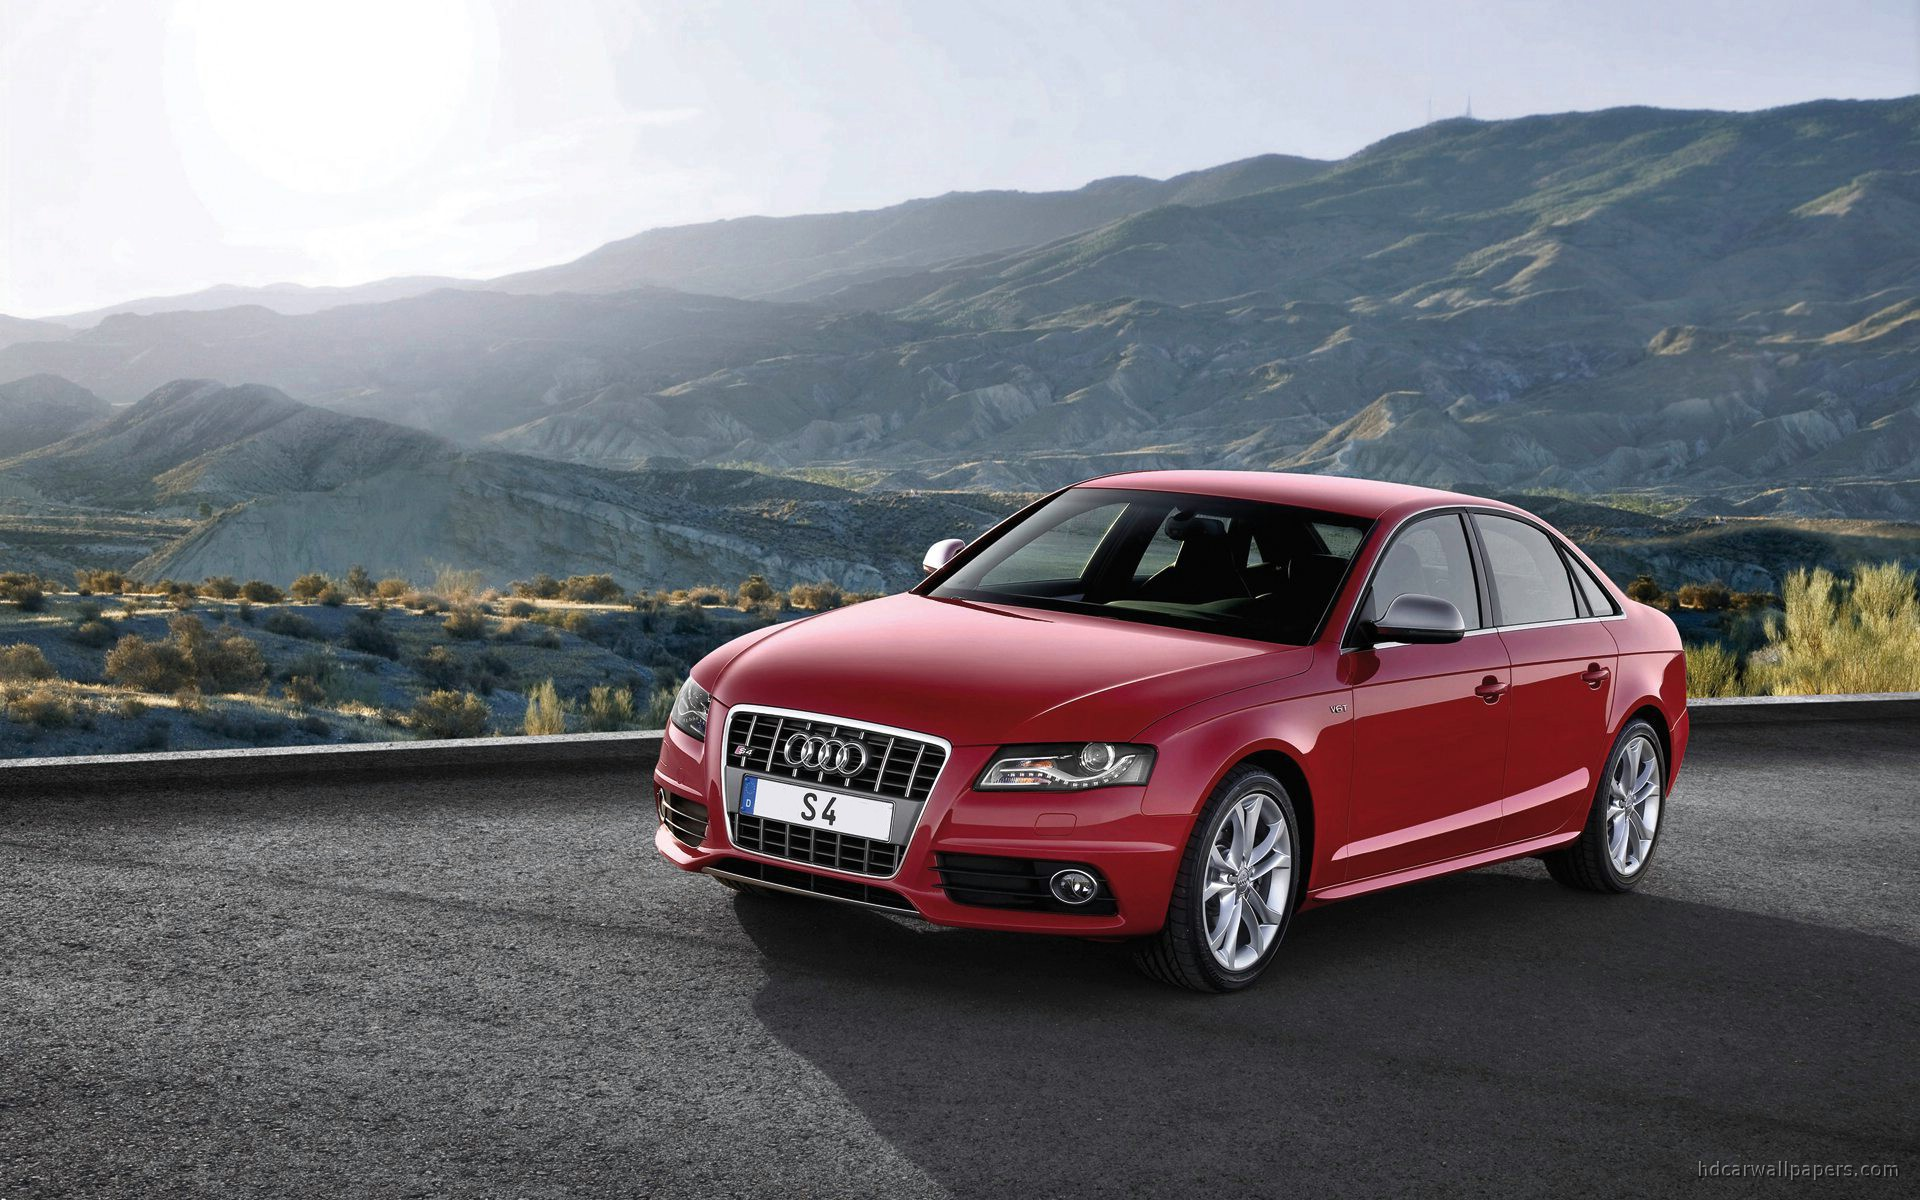 65271-audi-a4-red-desktop-wallpaper-1920x1200S4